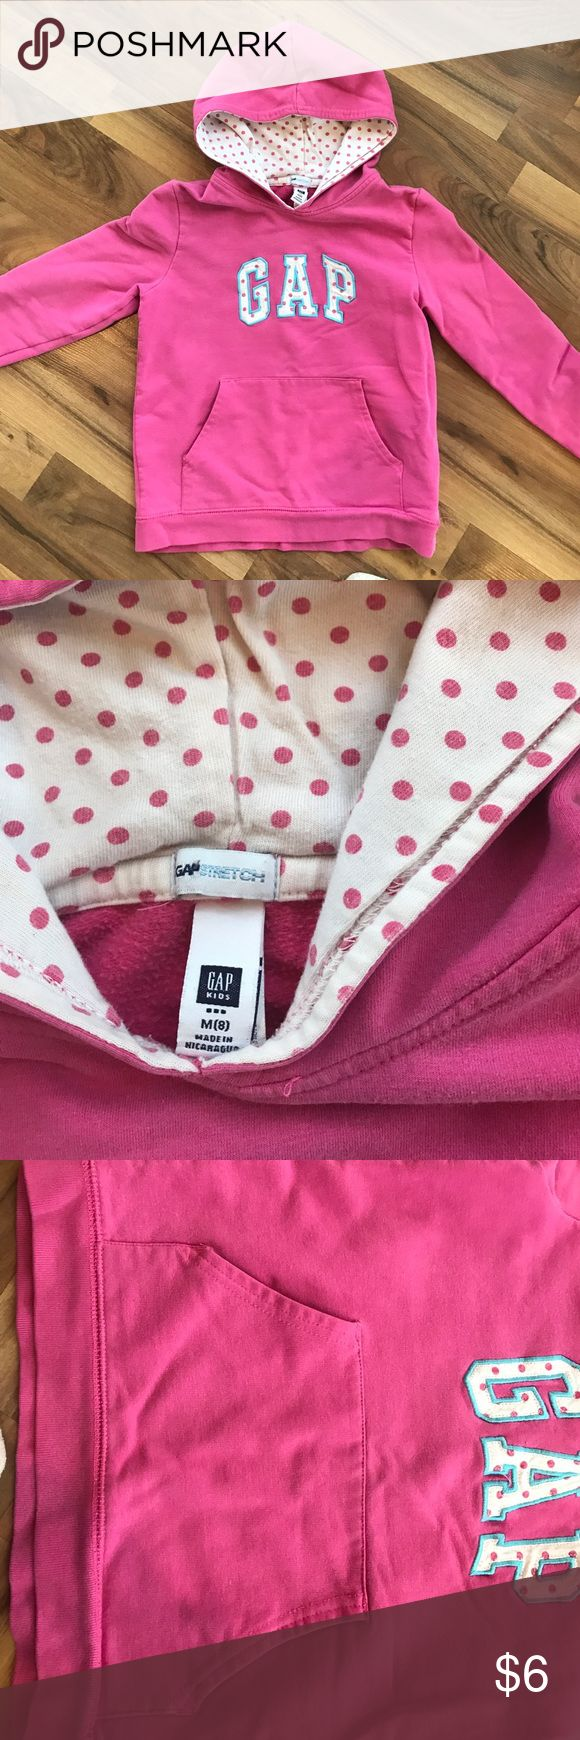 Pink gap sweatshirt This is a pink polka dot sweater purchased from gap. It Is a kids m(8) but runs very small. Fit my 5 yr  old daughter but now she has outgrown it. In fine condition. Has been worn and washed many times but still a good sweatshirt😄 has tiny spot on the back. GAP Shirts & Tops Sweatshirts & Hoodies